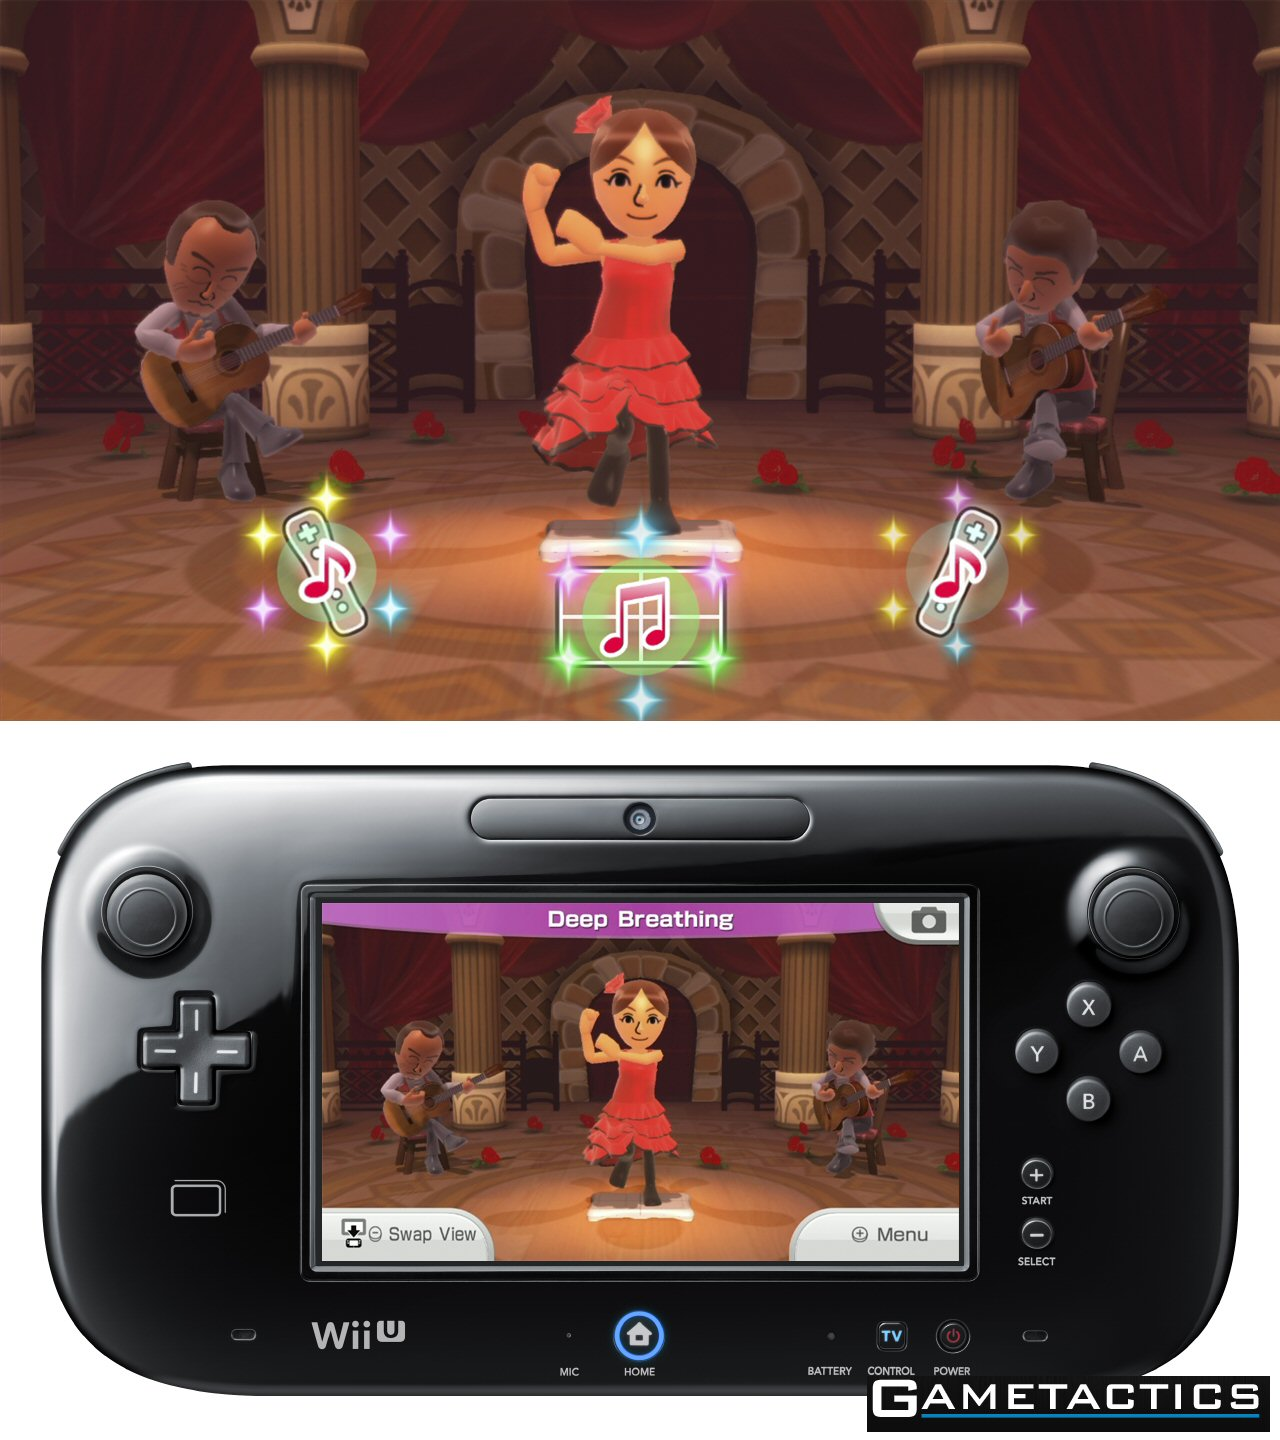 Balance Board Xbox One: Wii Fit U For Wii U Released Today : Gametactics.com